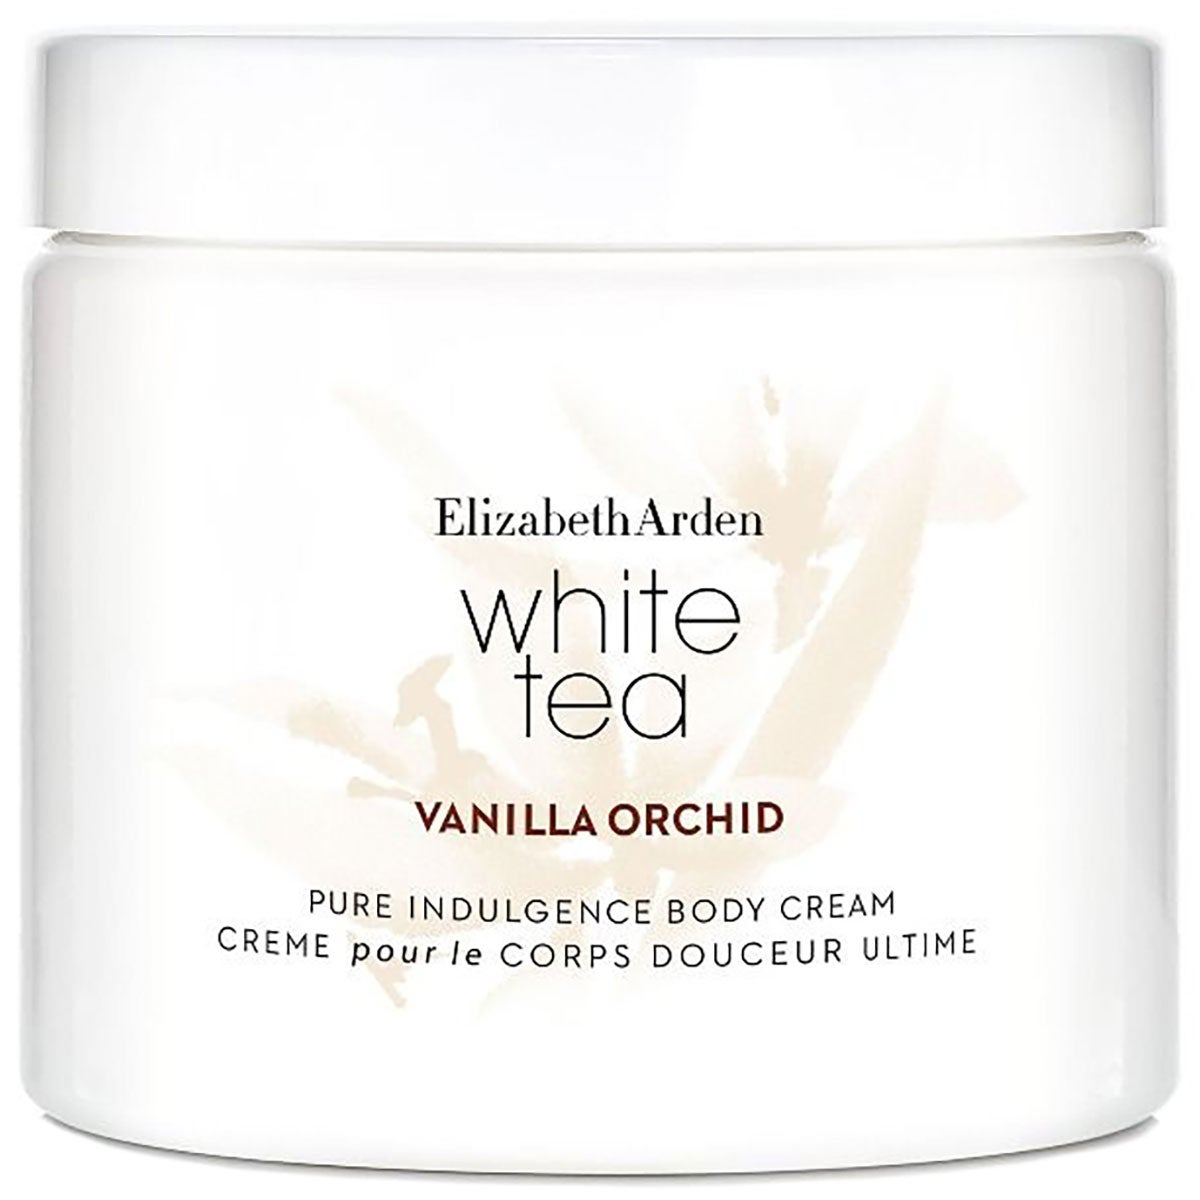 White Tea Vanilla Orchid 400 ml Elizabeth Arden Body Cream